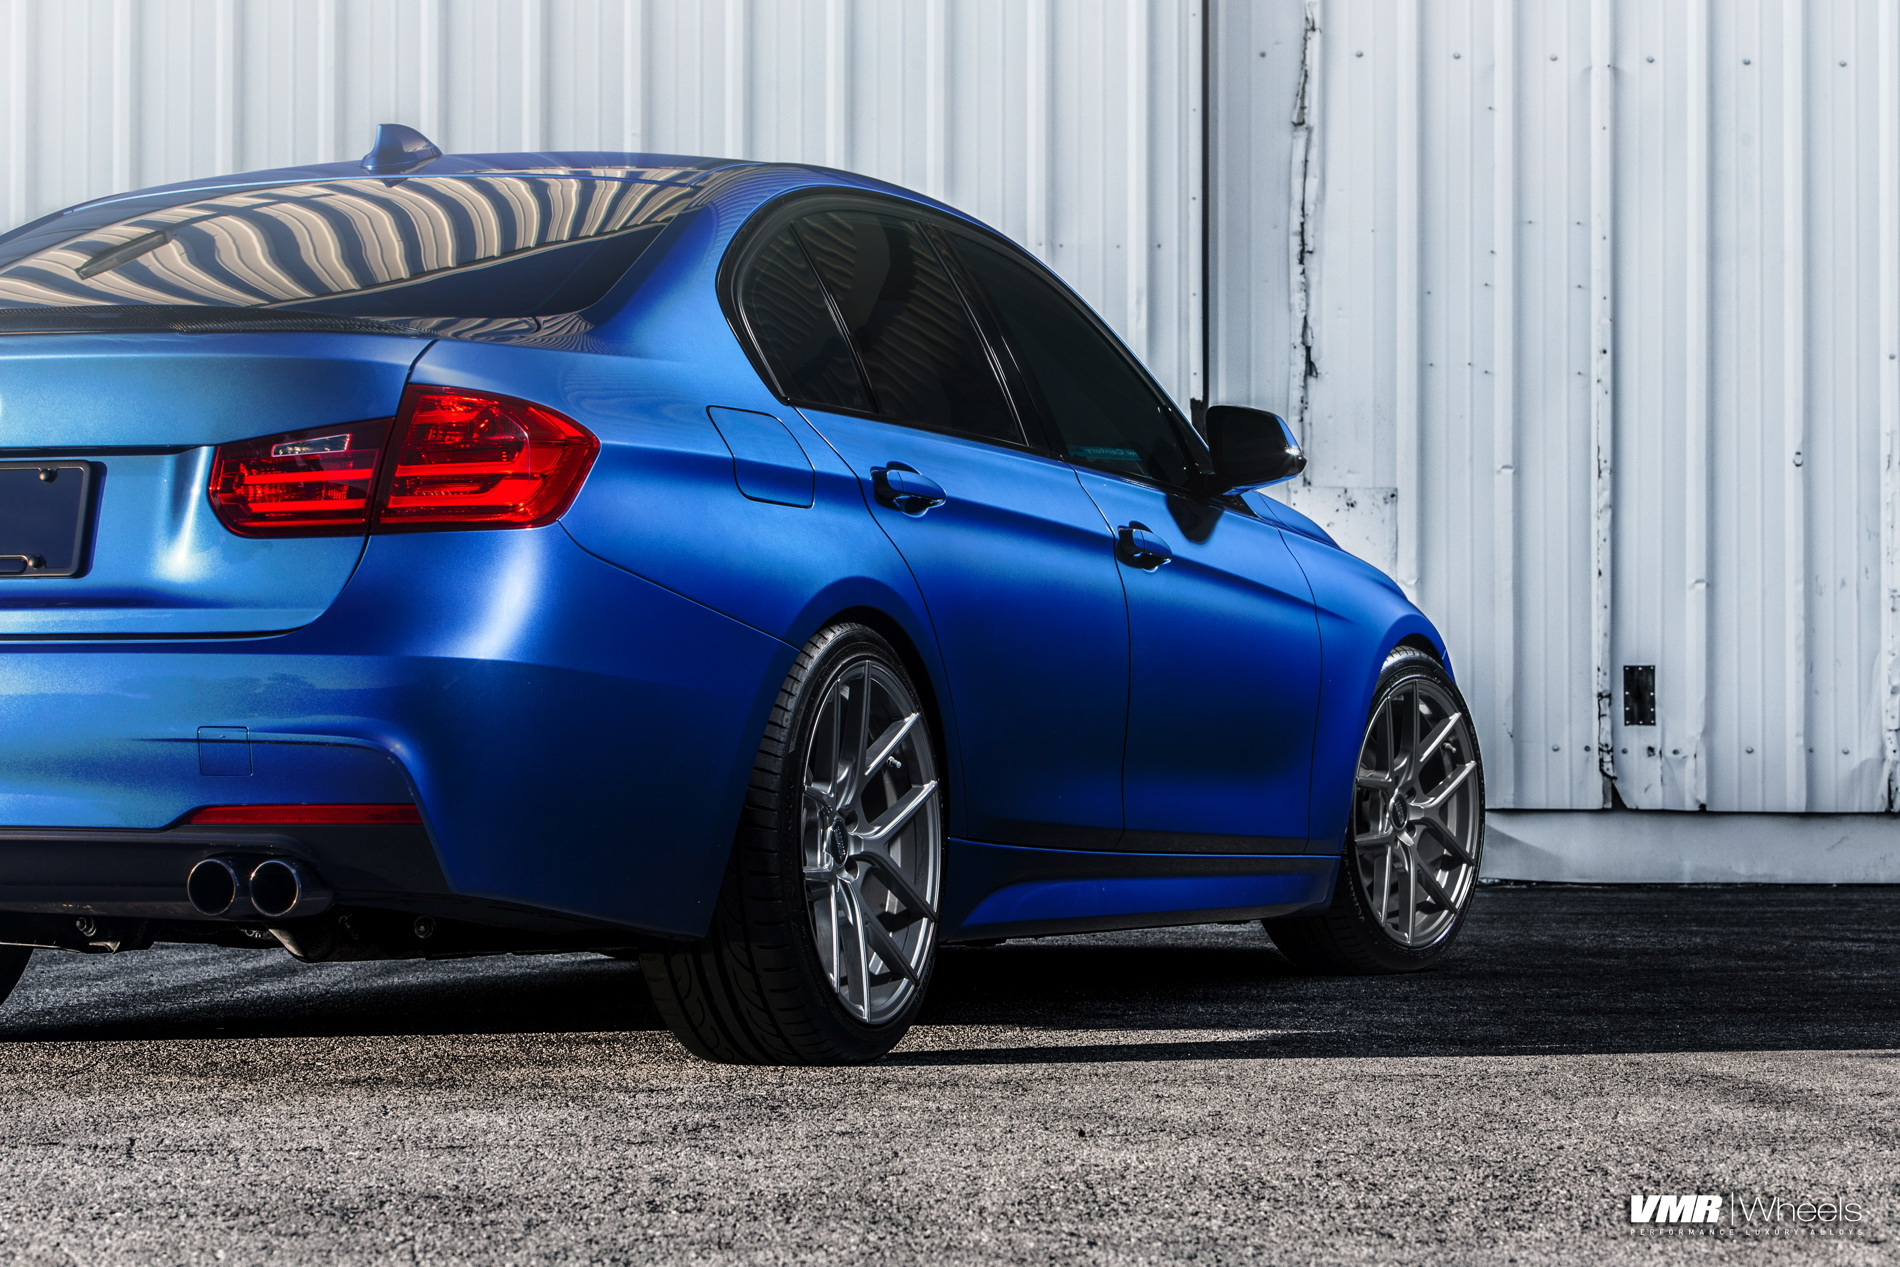 Bmw F30 328i Estoril Blue With Vmr V803 Gunmetal Custom Wheels